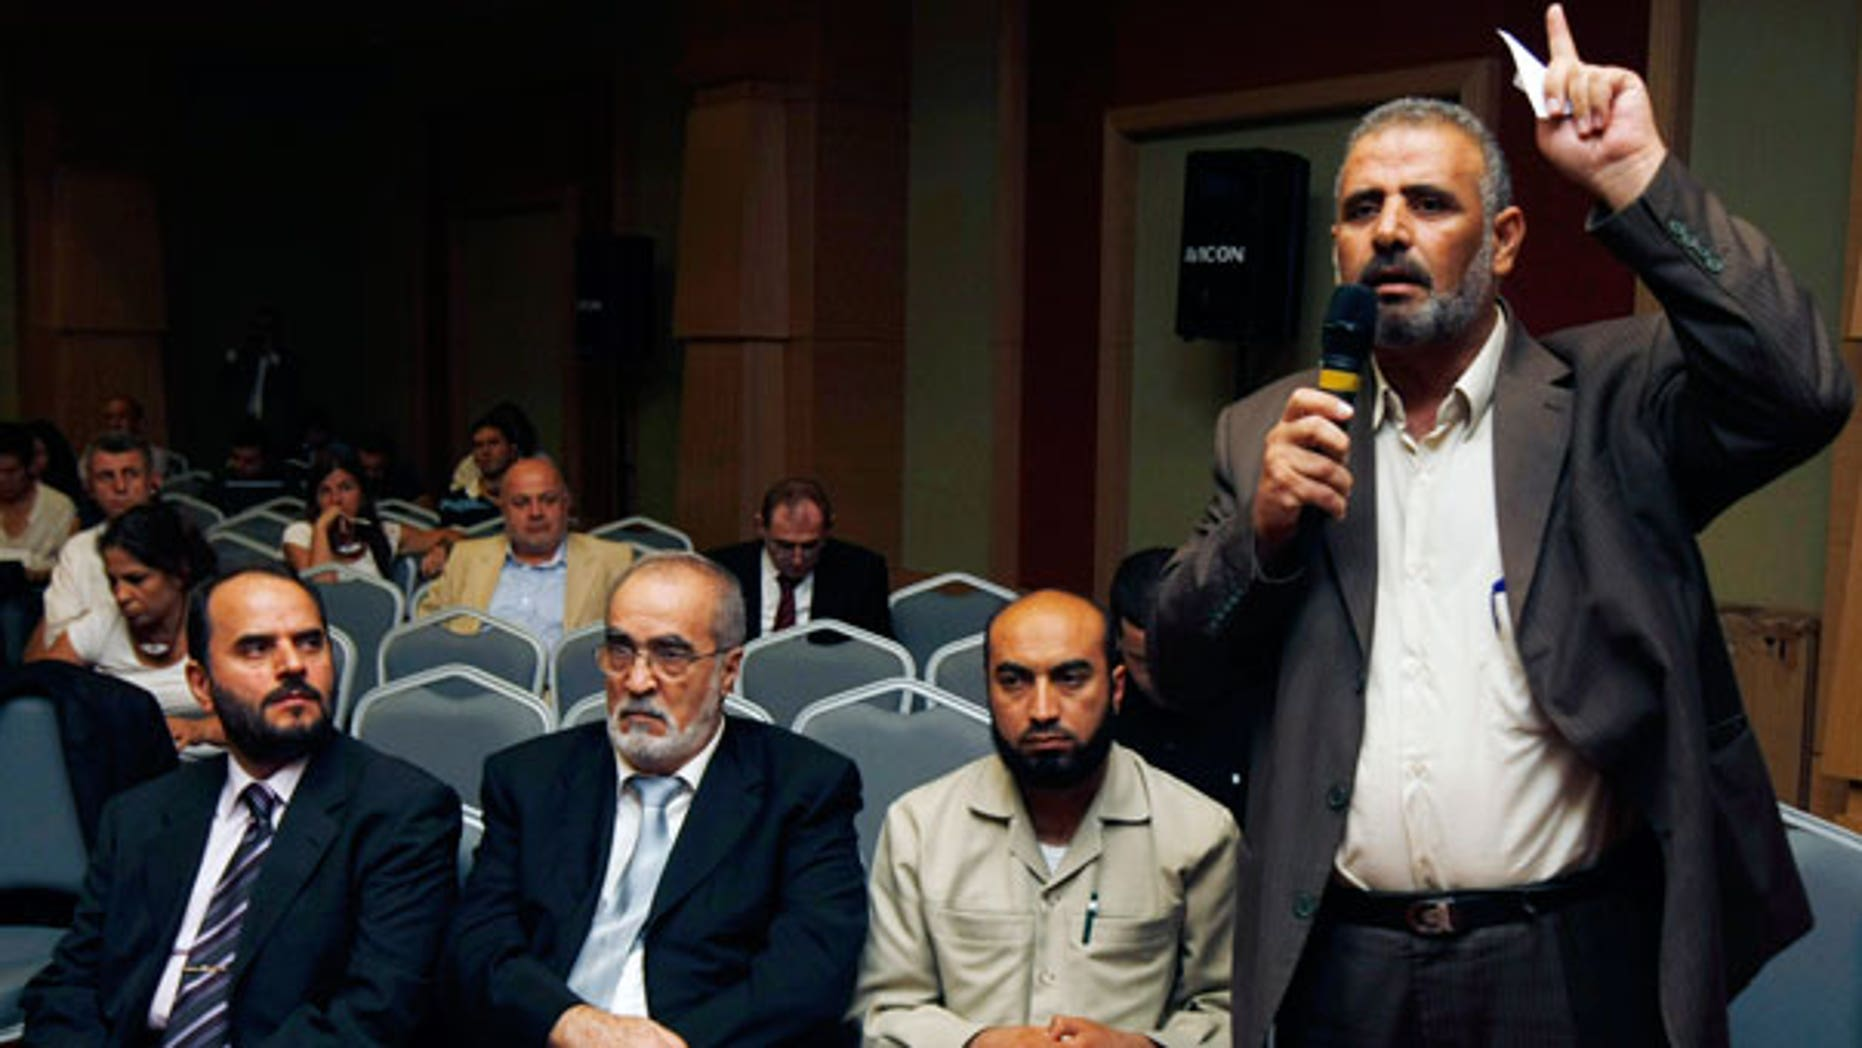 Sept. 15: Jamal Al Wadi from the Syrian city of Daraa speaks as Syrian opposition members listen after they announced a Syrian National Council in their bid to present a united front against President Bashar Assad's regime, in Istanbul, Turkey.